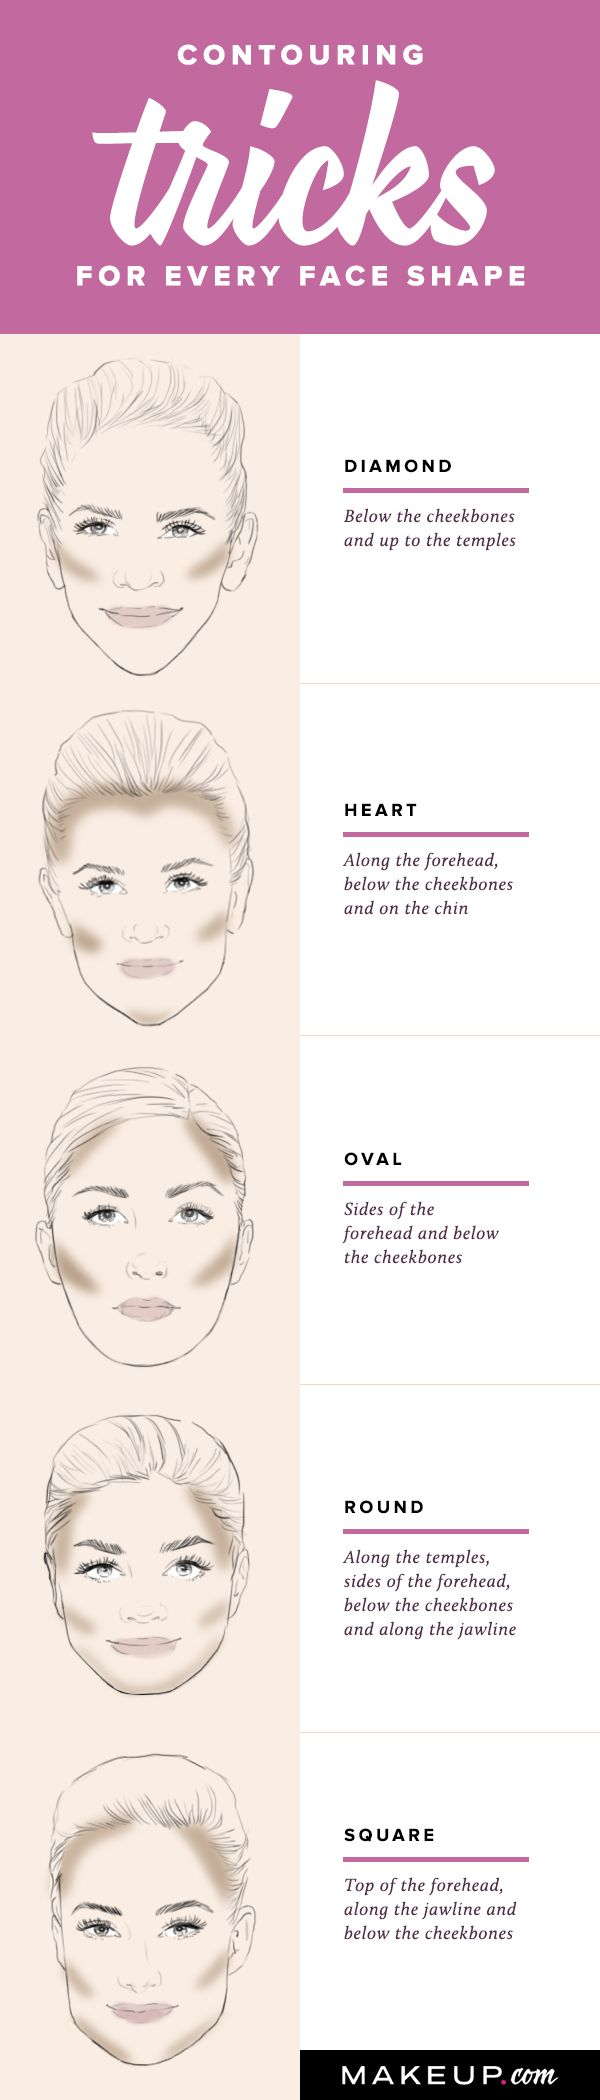 Contouring and highlighting is the best way to make your facial features stand out. Easy conturing tutorials don't come around very often, but our DIY tutorial is the best guide you'll find for making your makeup and beauty game its very best for your fac